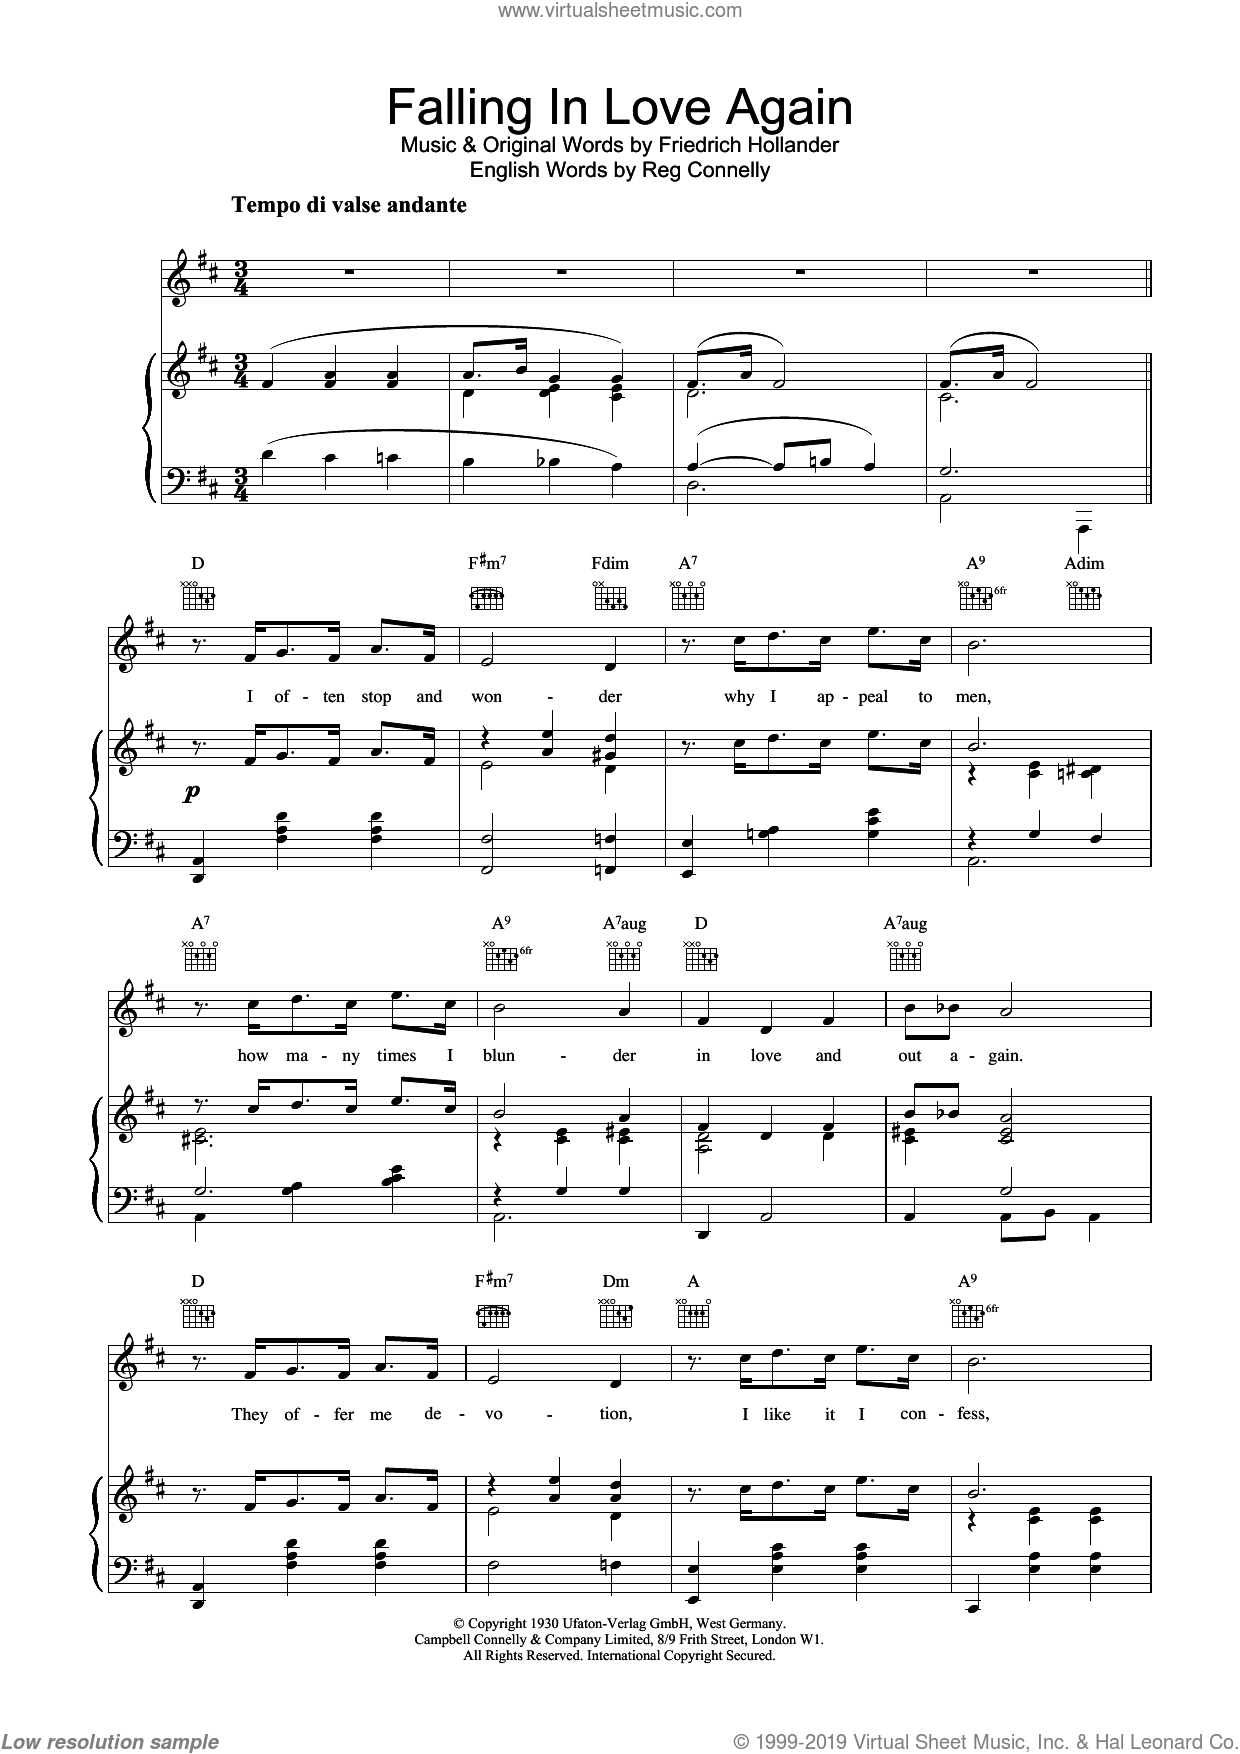 Falling In Love Again sheet music for voice, piano or guitar by Marlene Dietrich, Frederick Hollander and Sammy Lerner, intermediate skill level